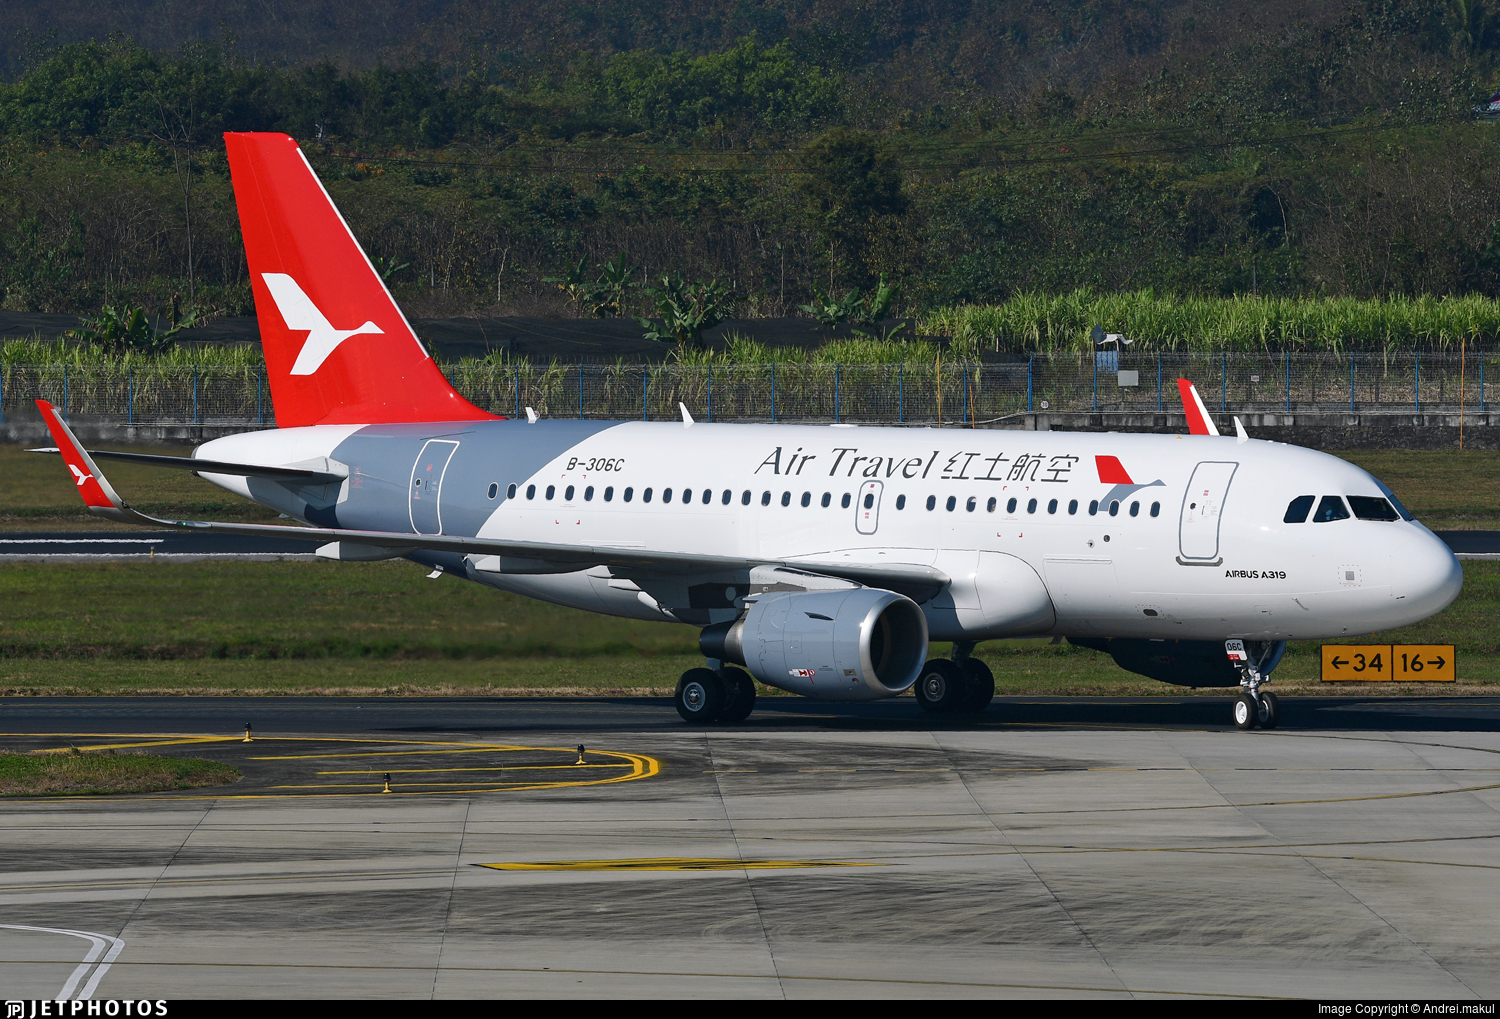 B-306C - Airbus A319-115 - Air Travel